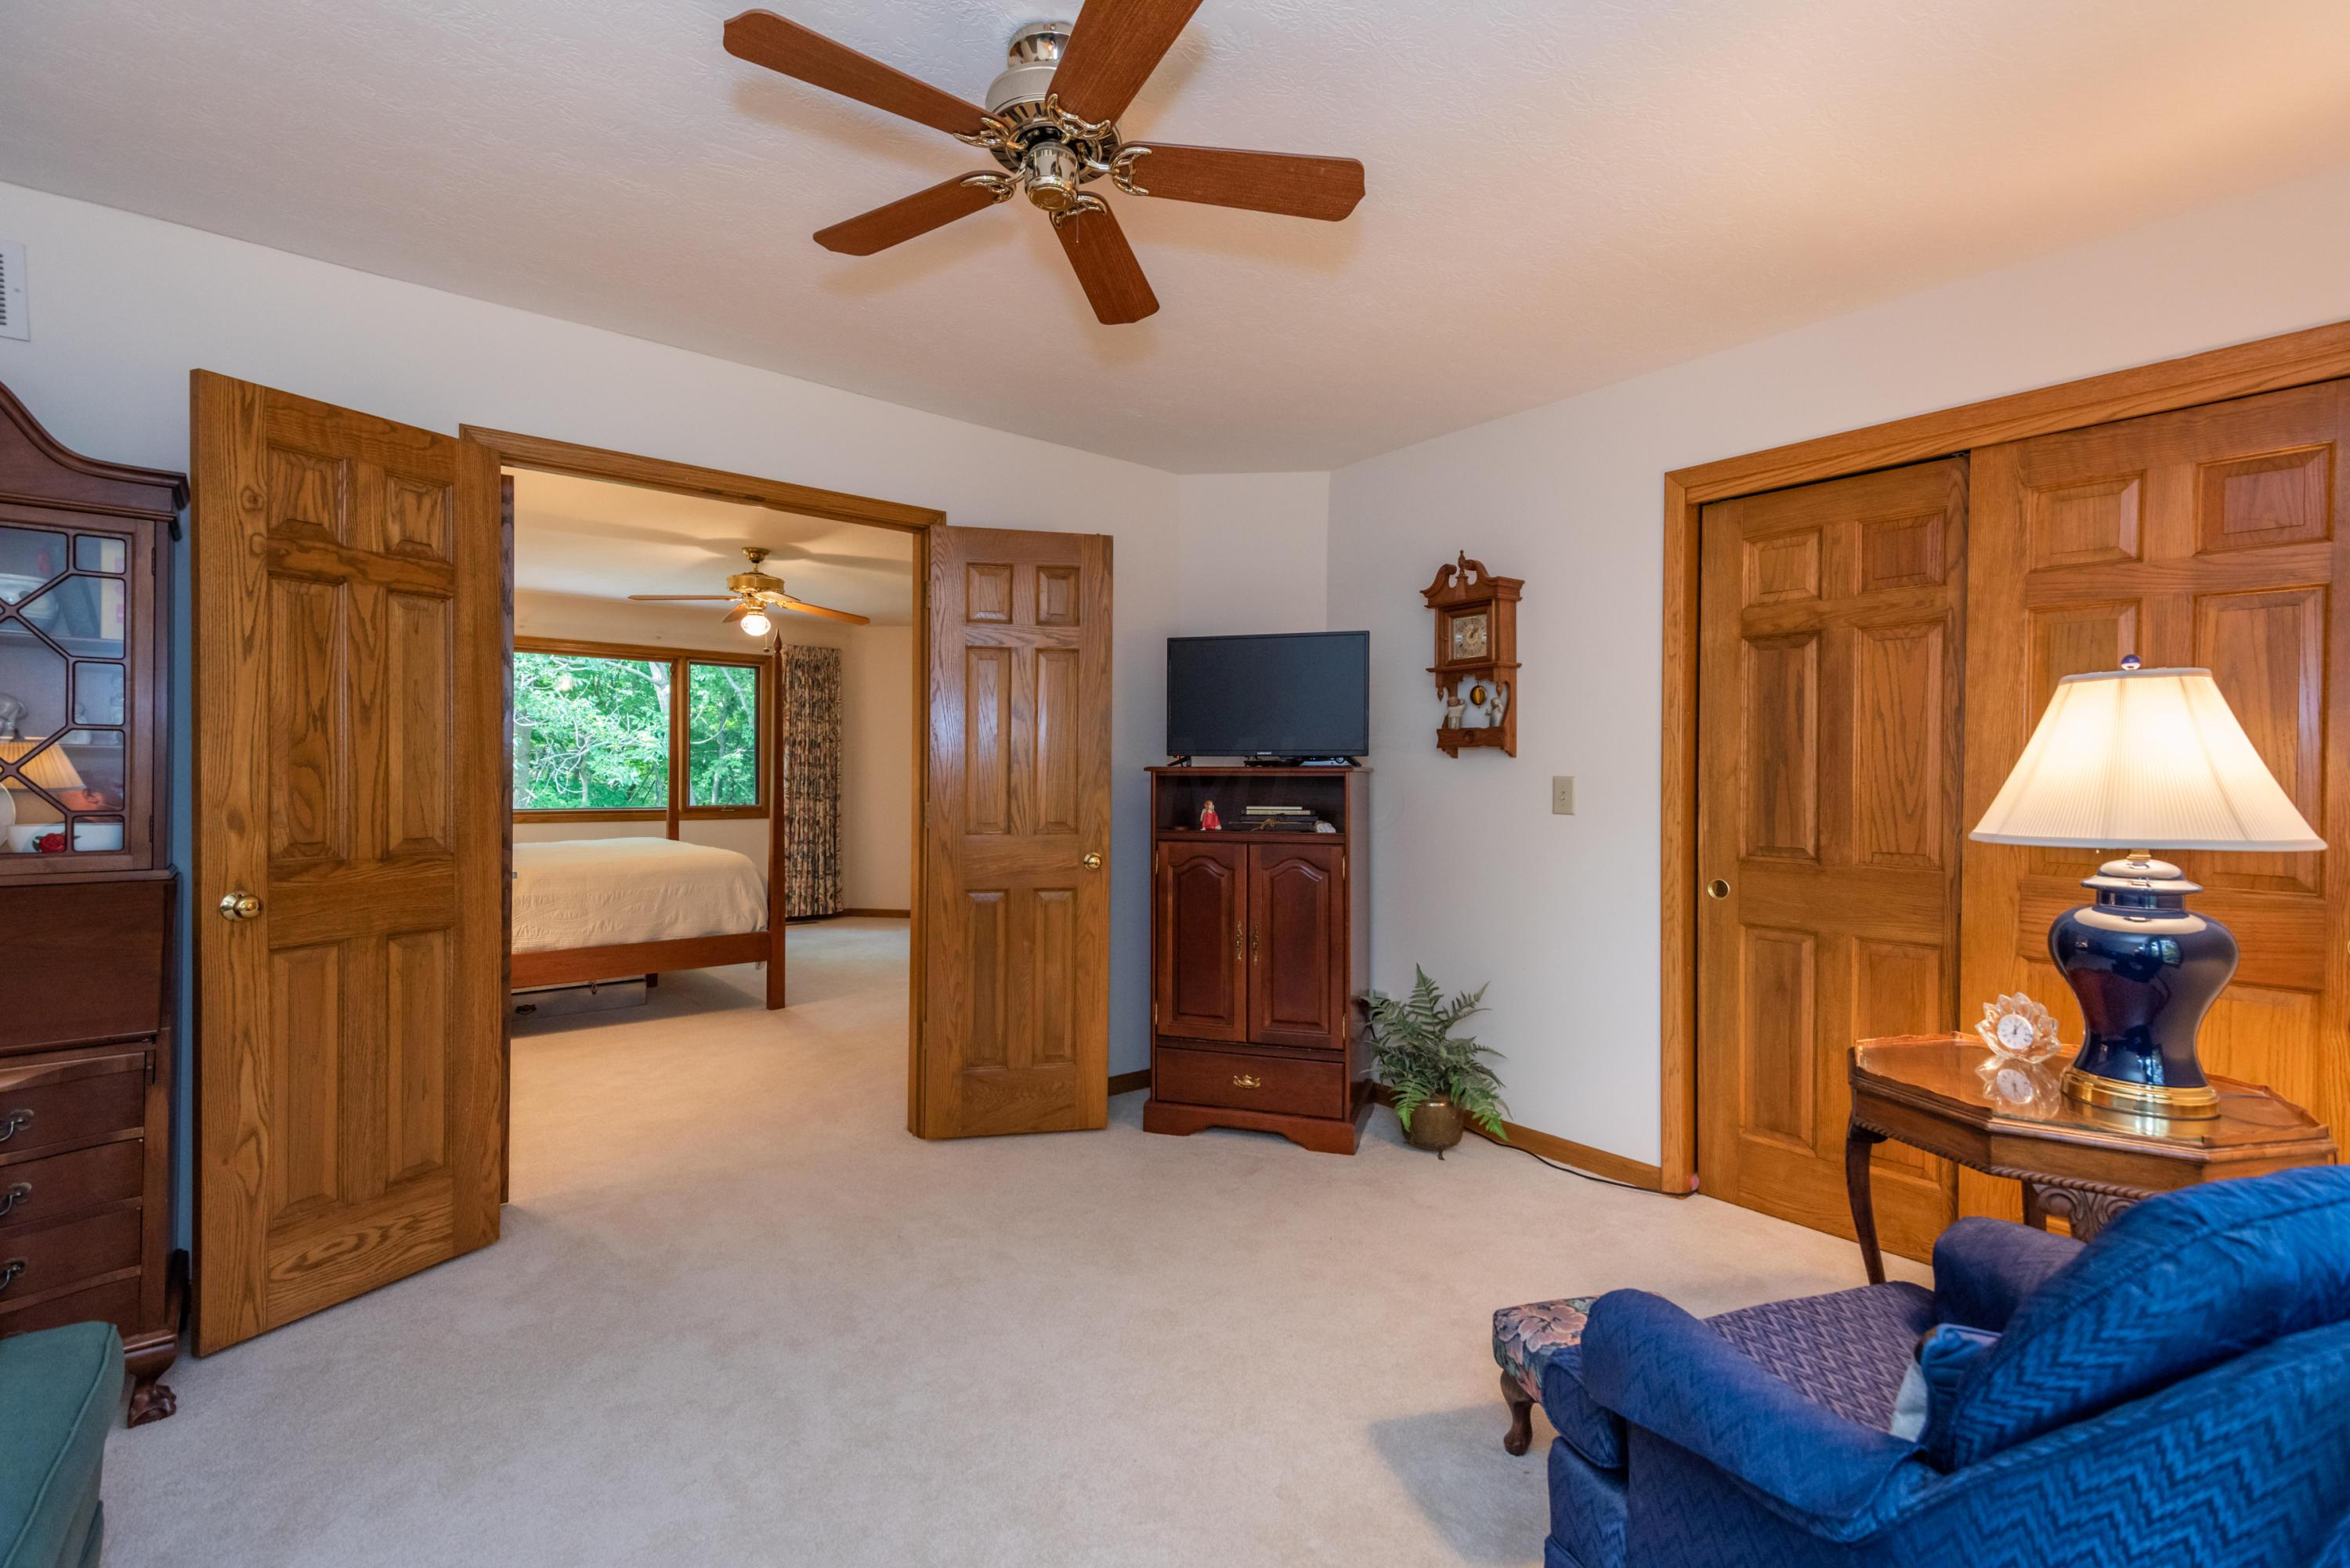 5742 Rushwood Drive, Dublin, Ohio 43017, 3 Bedrooms Bedrooms, ,3 BathroomsBathrooms,Residential,For Sale,Rushwood,220020403